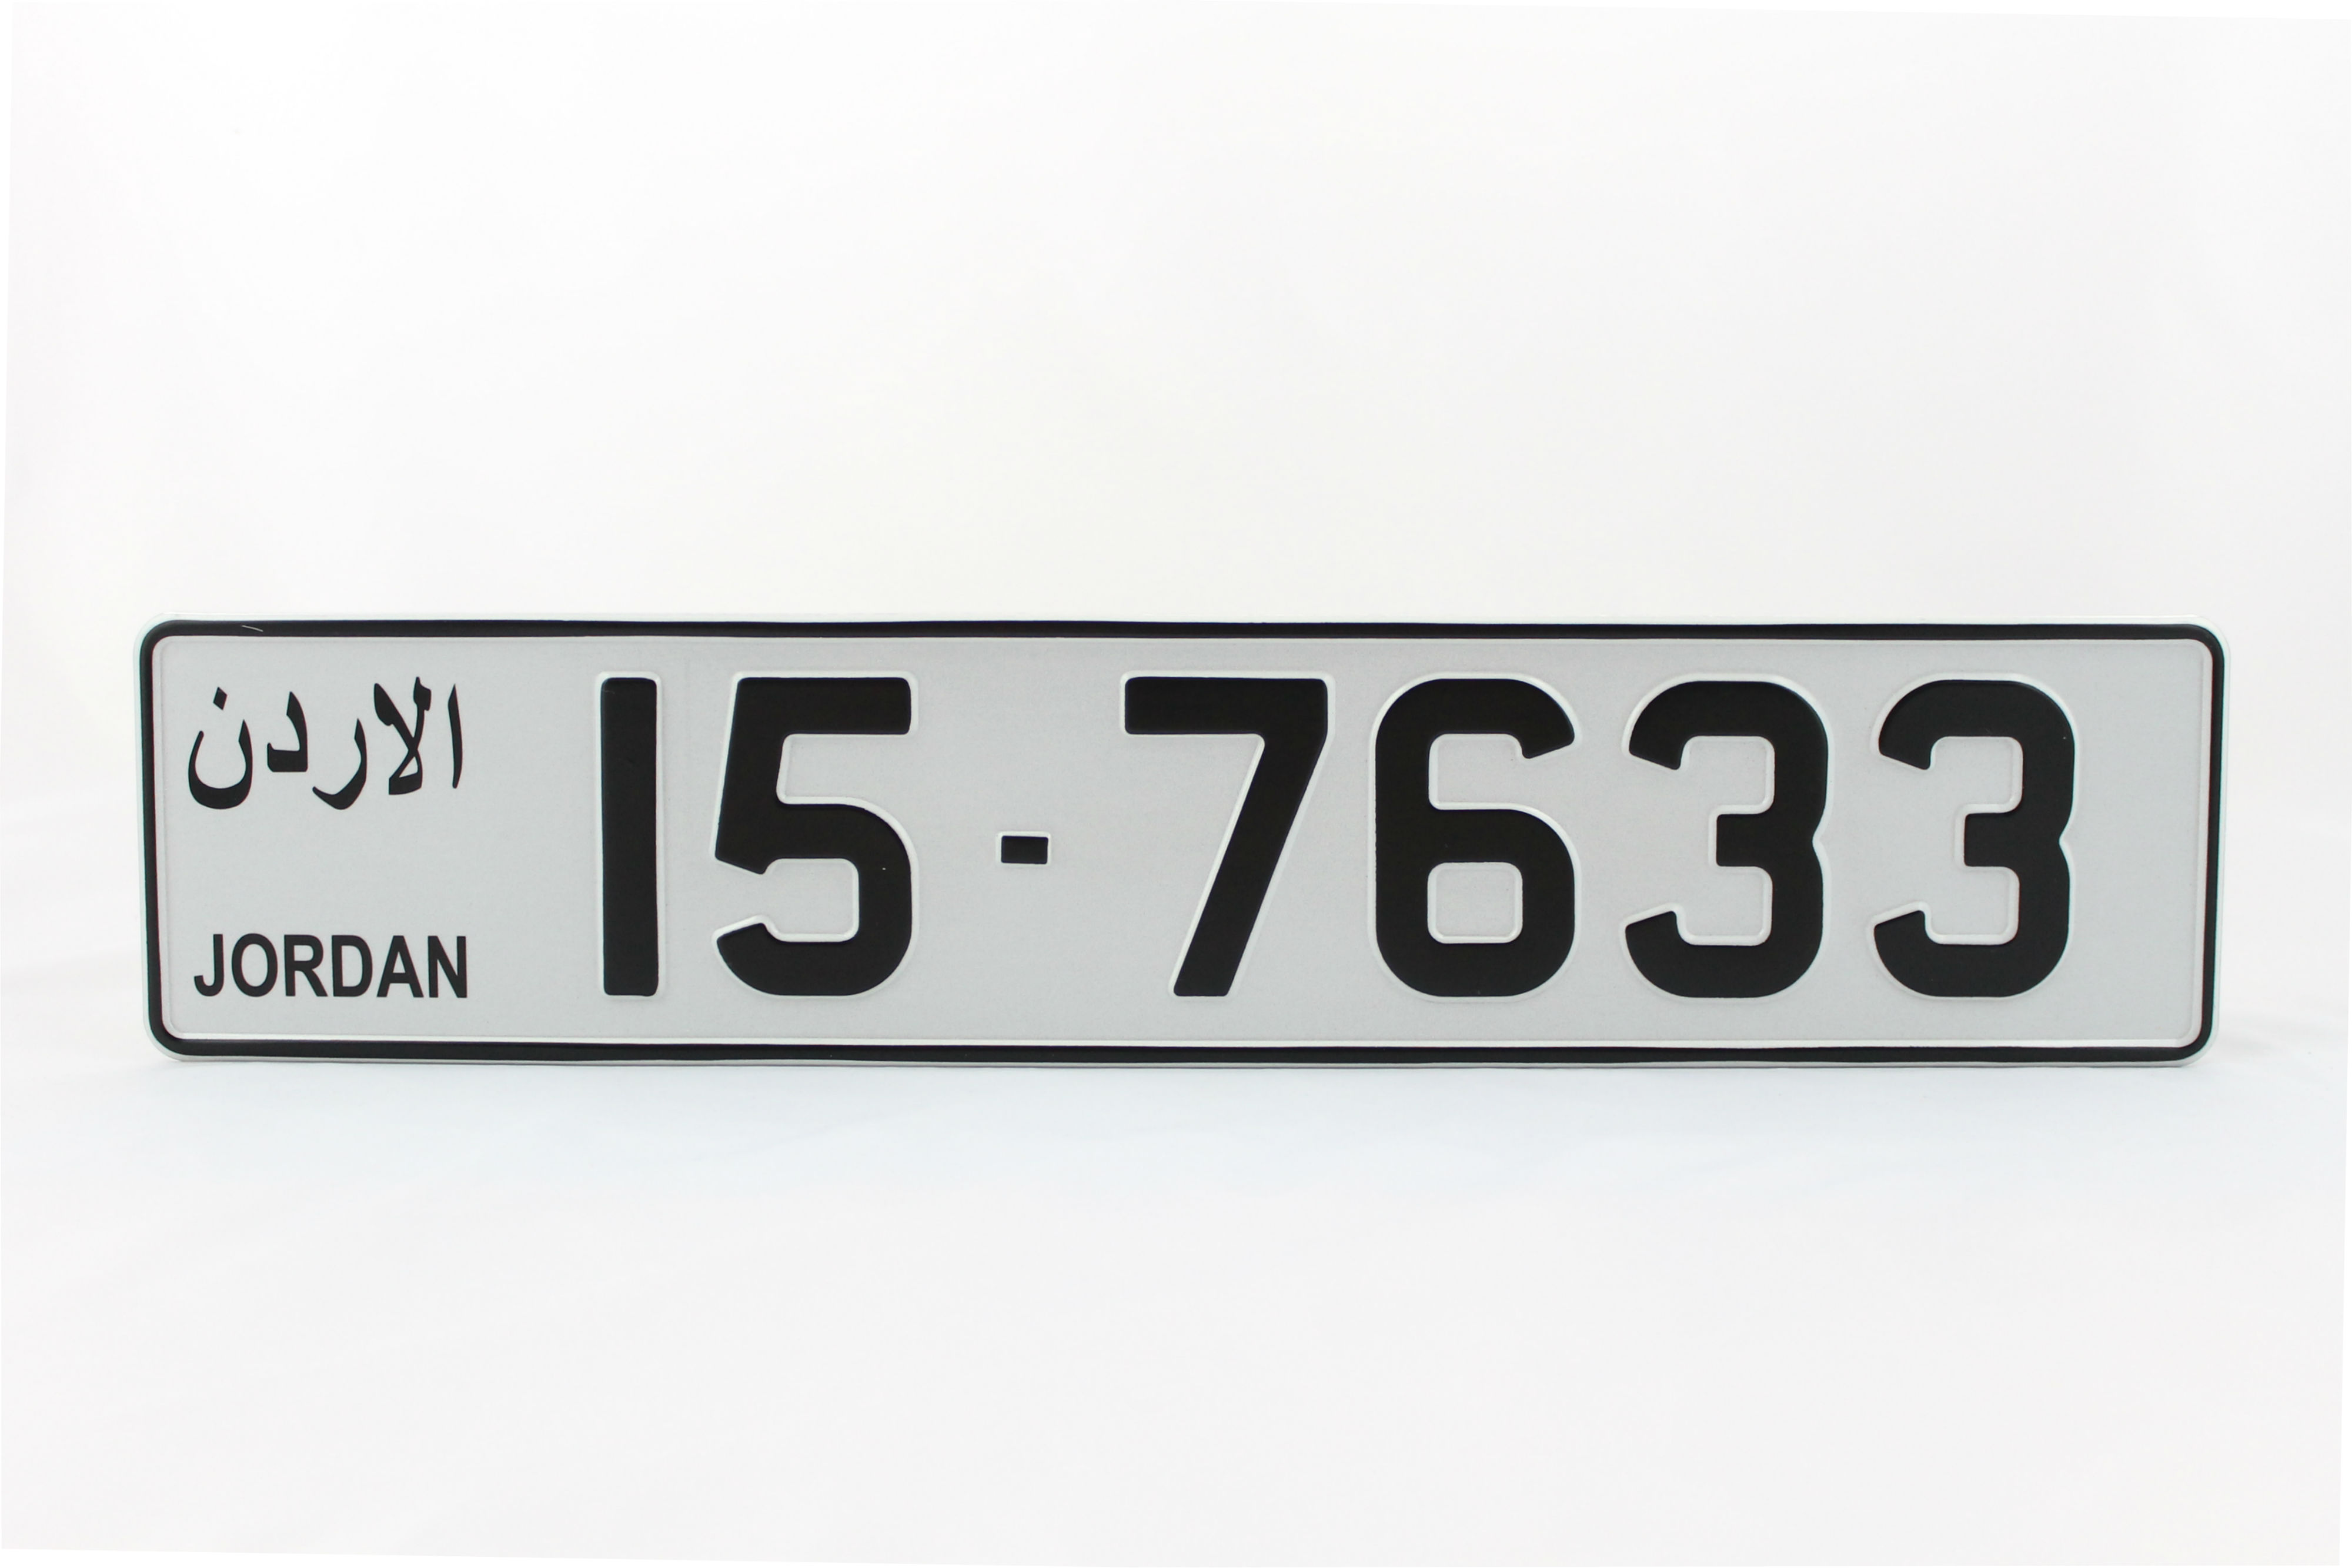 Lot of 3 New License Plate Aluminum Number Plates Embossed European and arabian